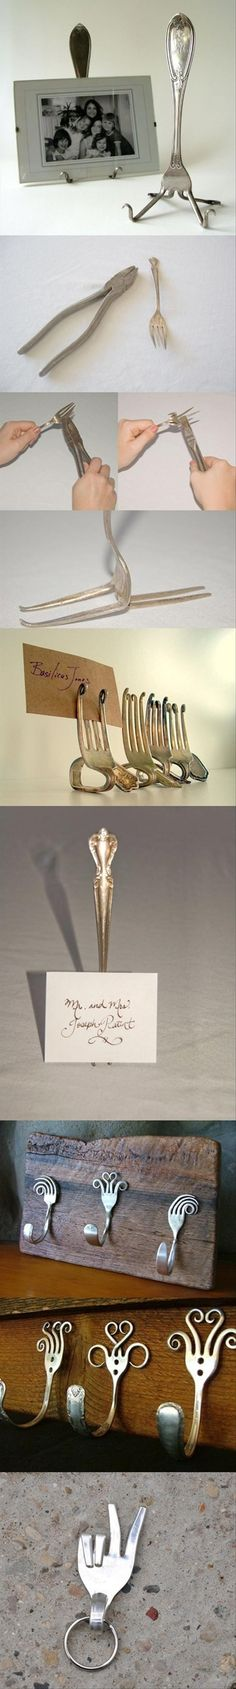 Fun Do It Yourself Craft Ideas. Reusing Old Forks.